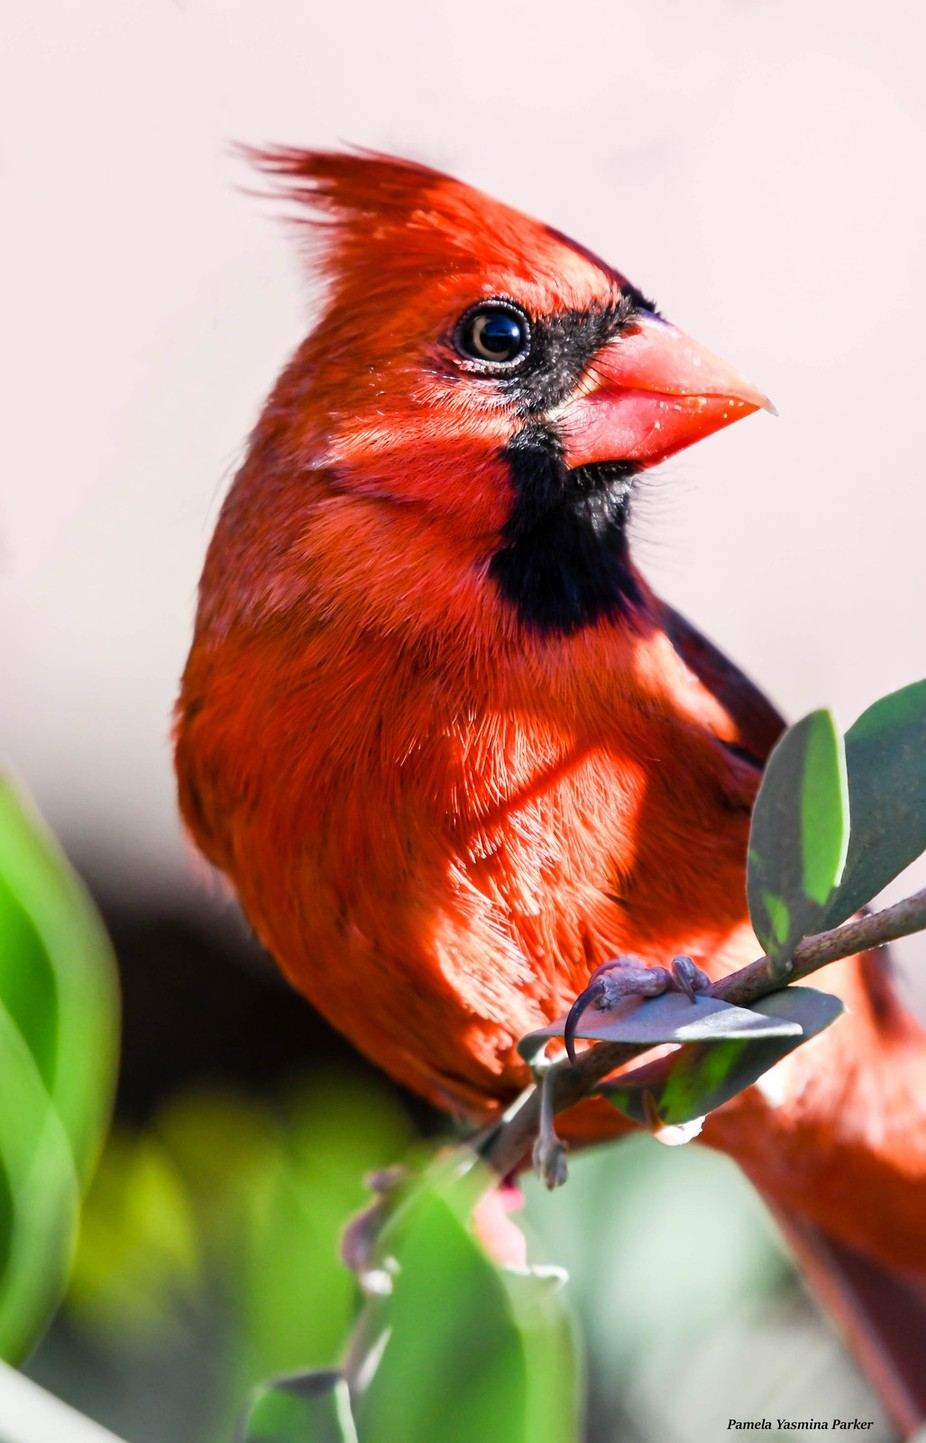 I have been trying to photograph a Northern Cardinal for years.  Finally the day arrived!